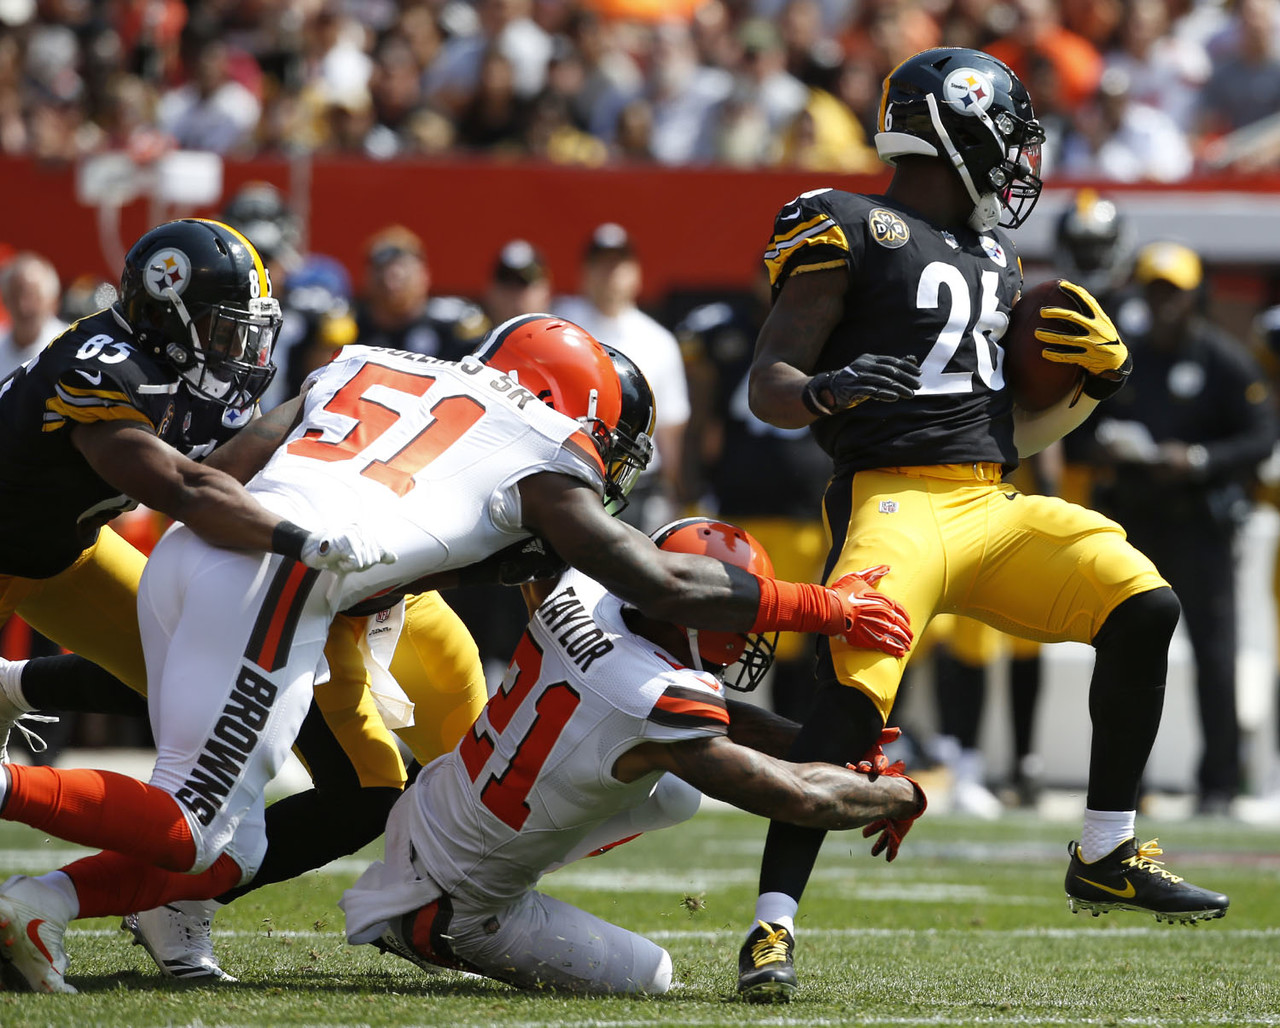 Nfl football predictions for week 1 thevintagevision co uk